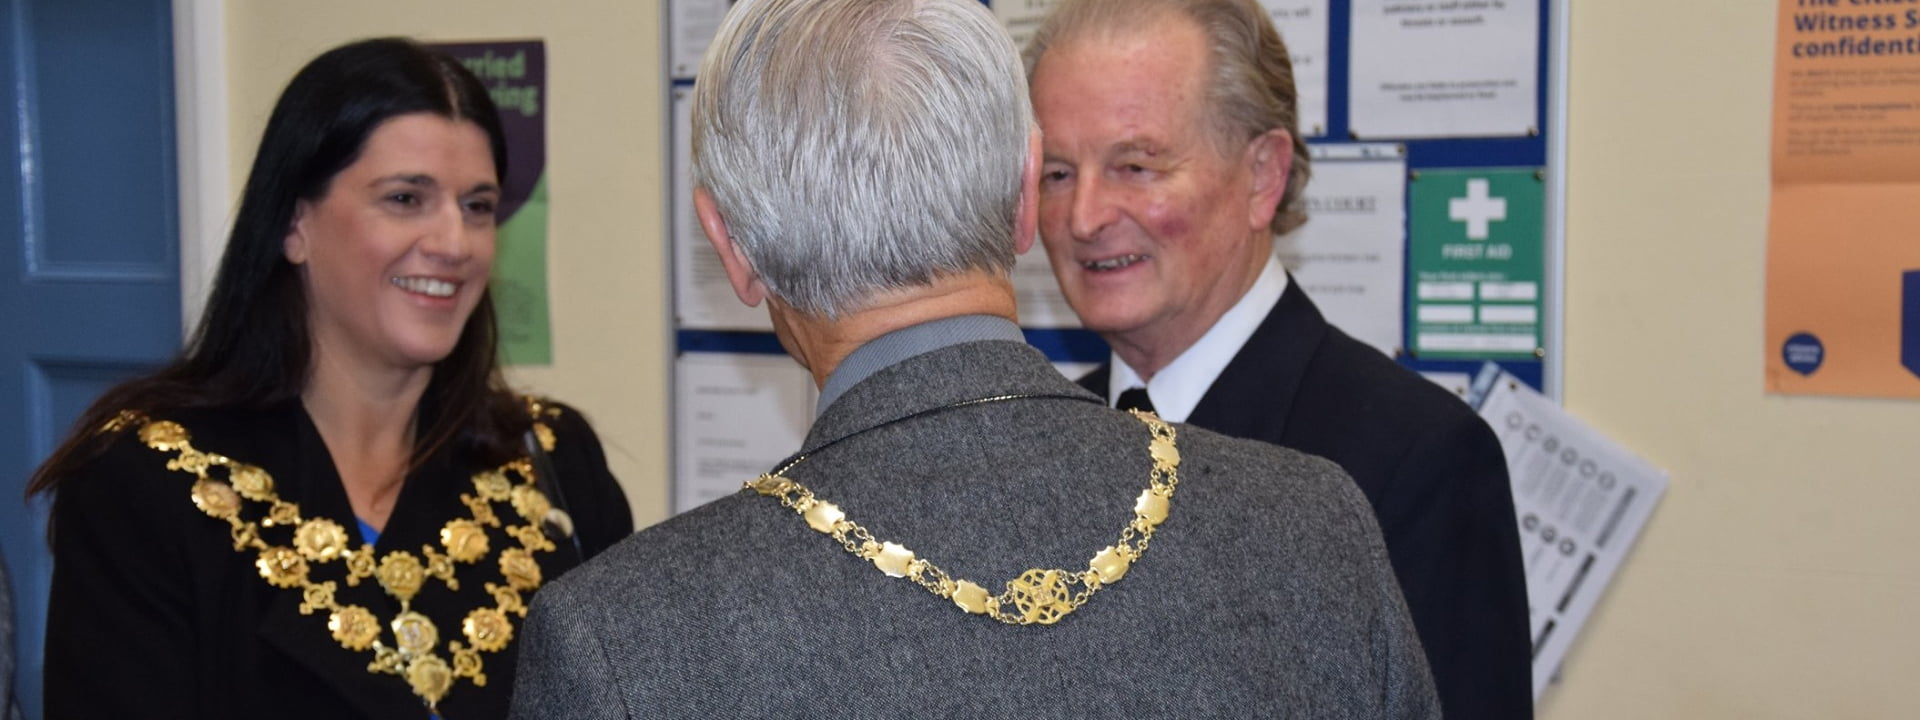 The Mayor Kath Hay Talking With other councillors